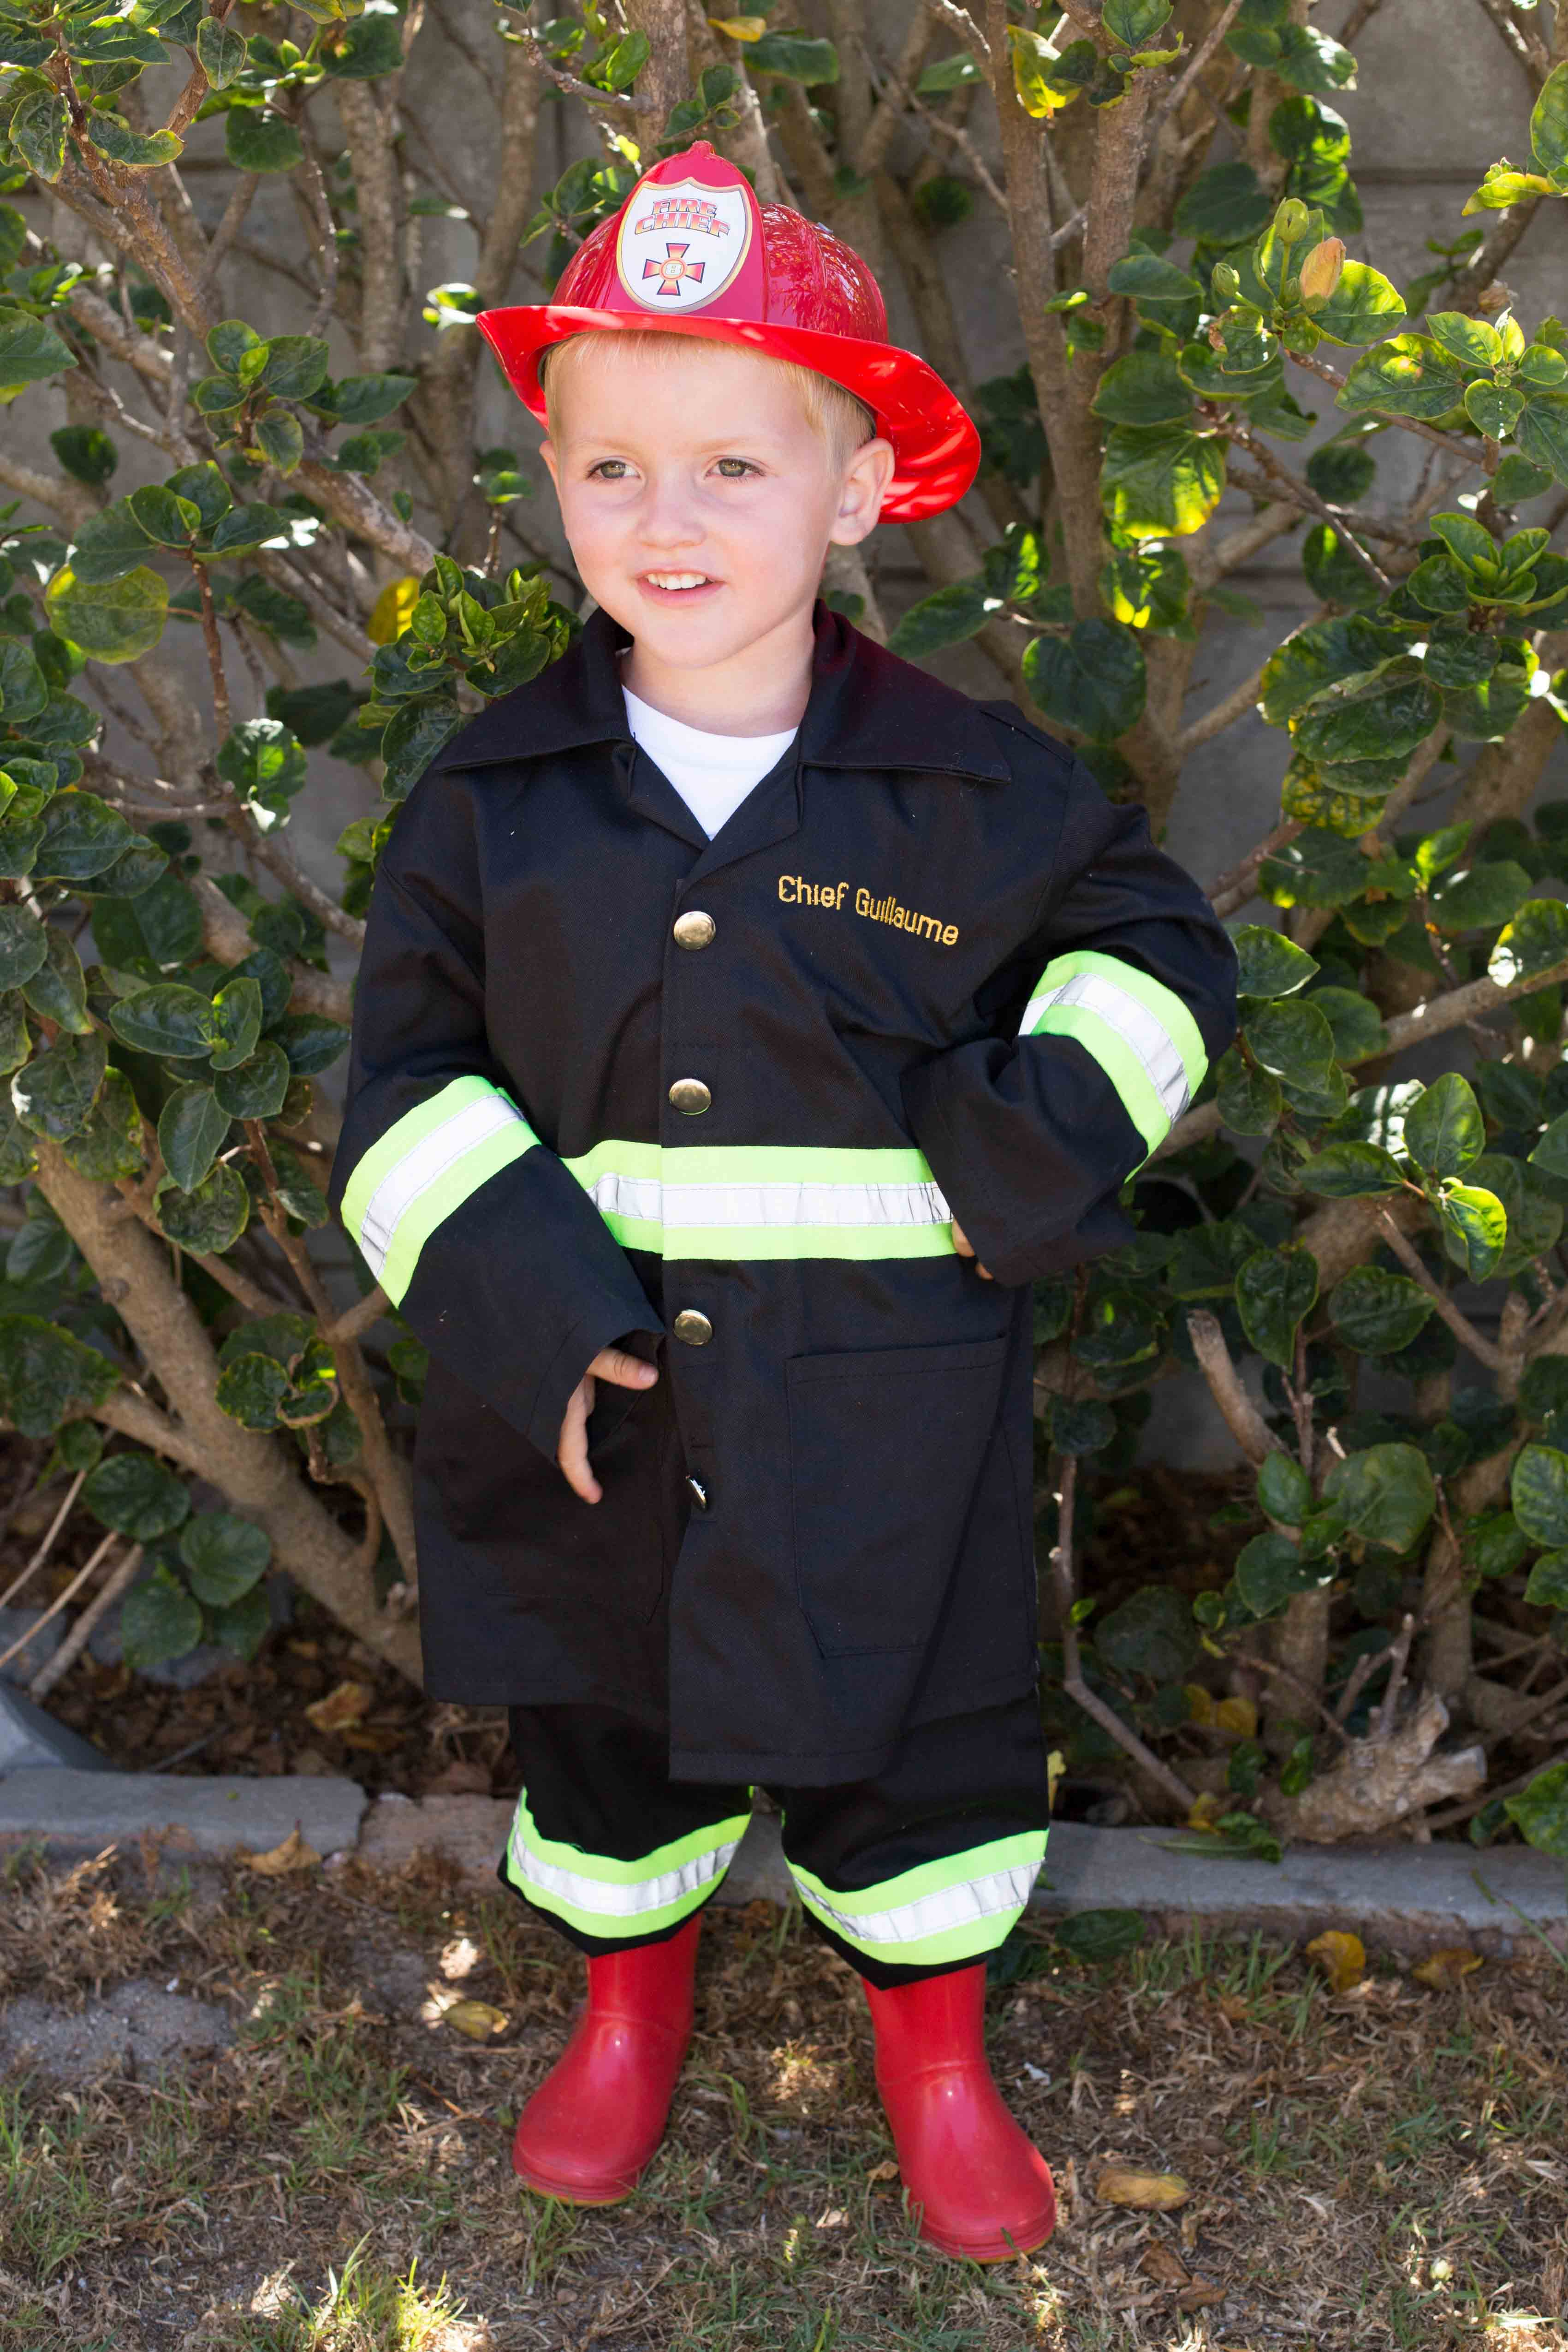 SPECIAL - BUY 2 FOR R580 - Specify sizes in comments 